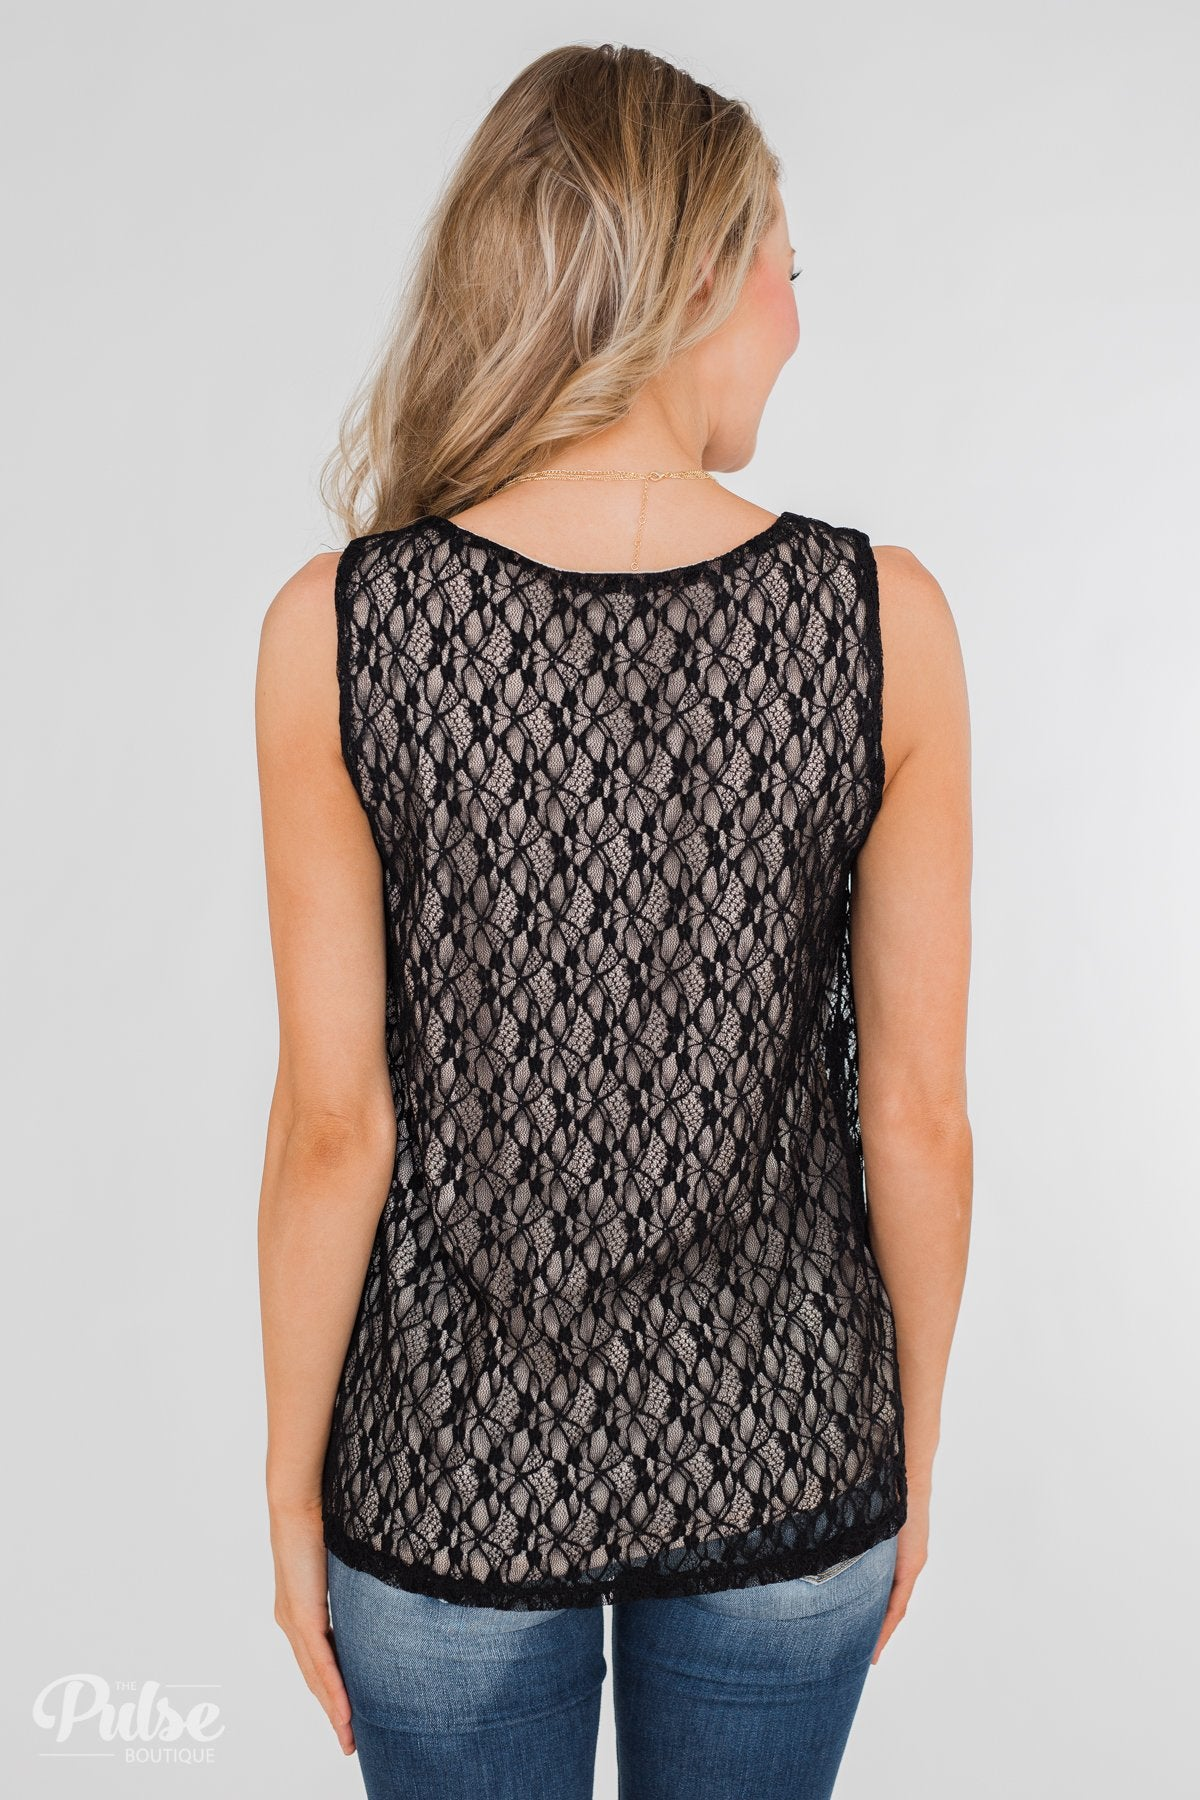 Show It Off Criss-Cross Lace Tank- Black